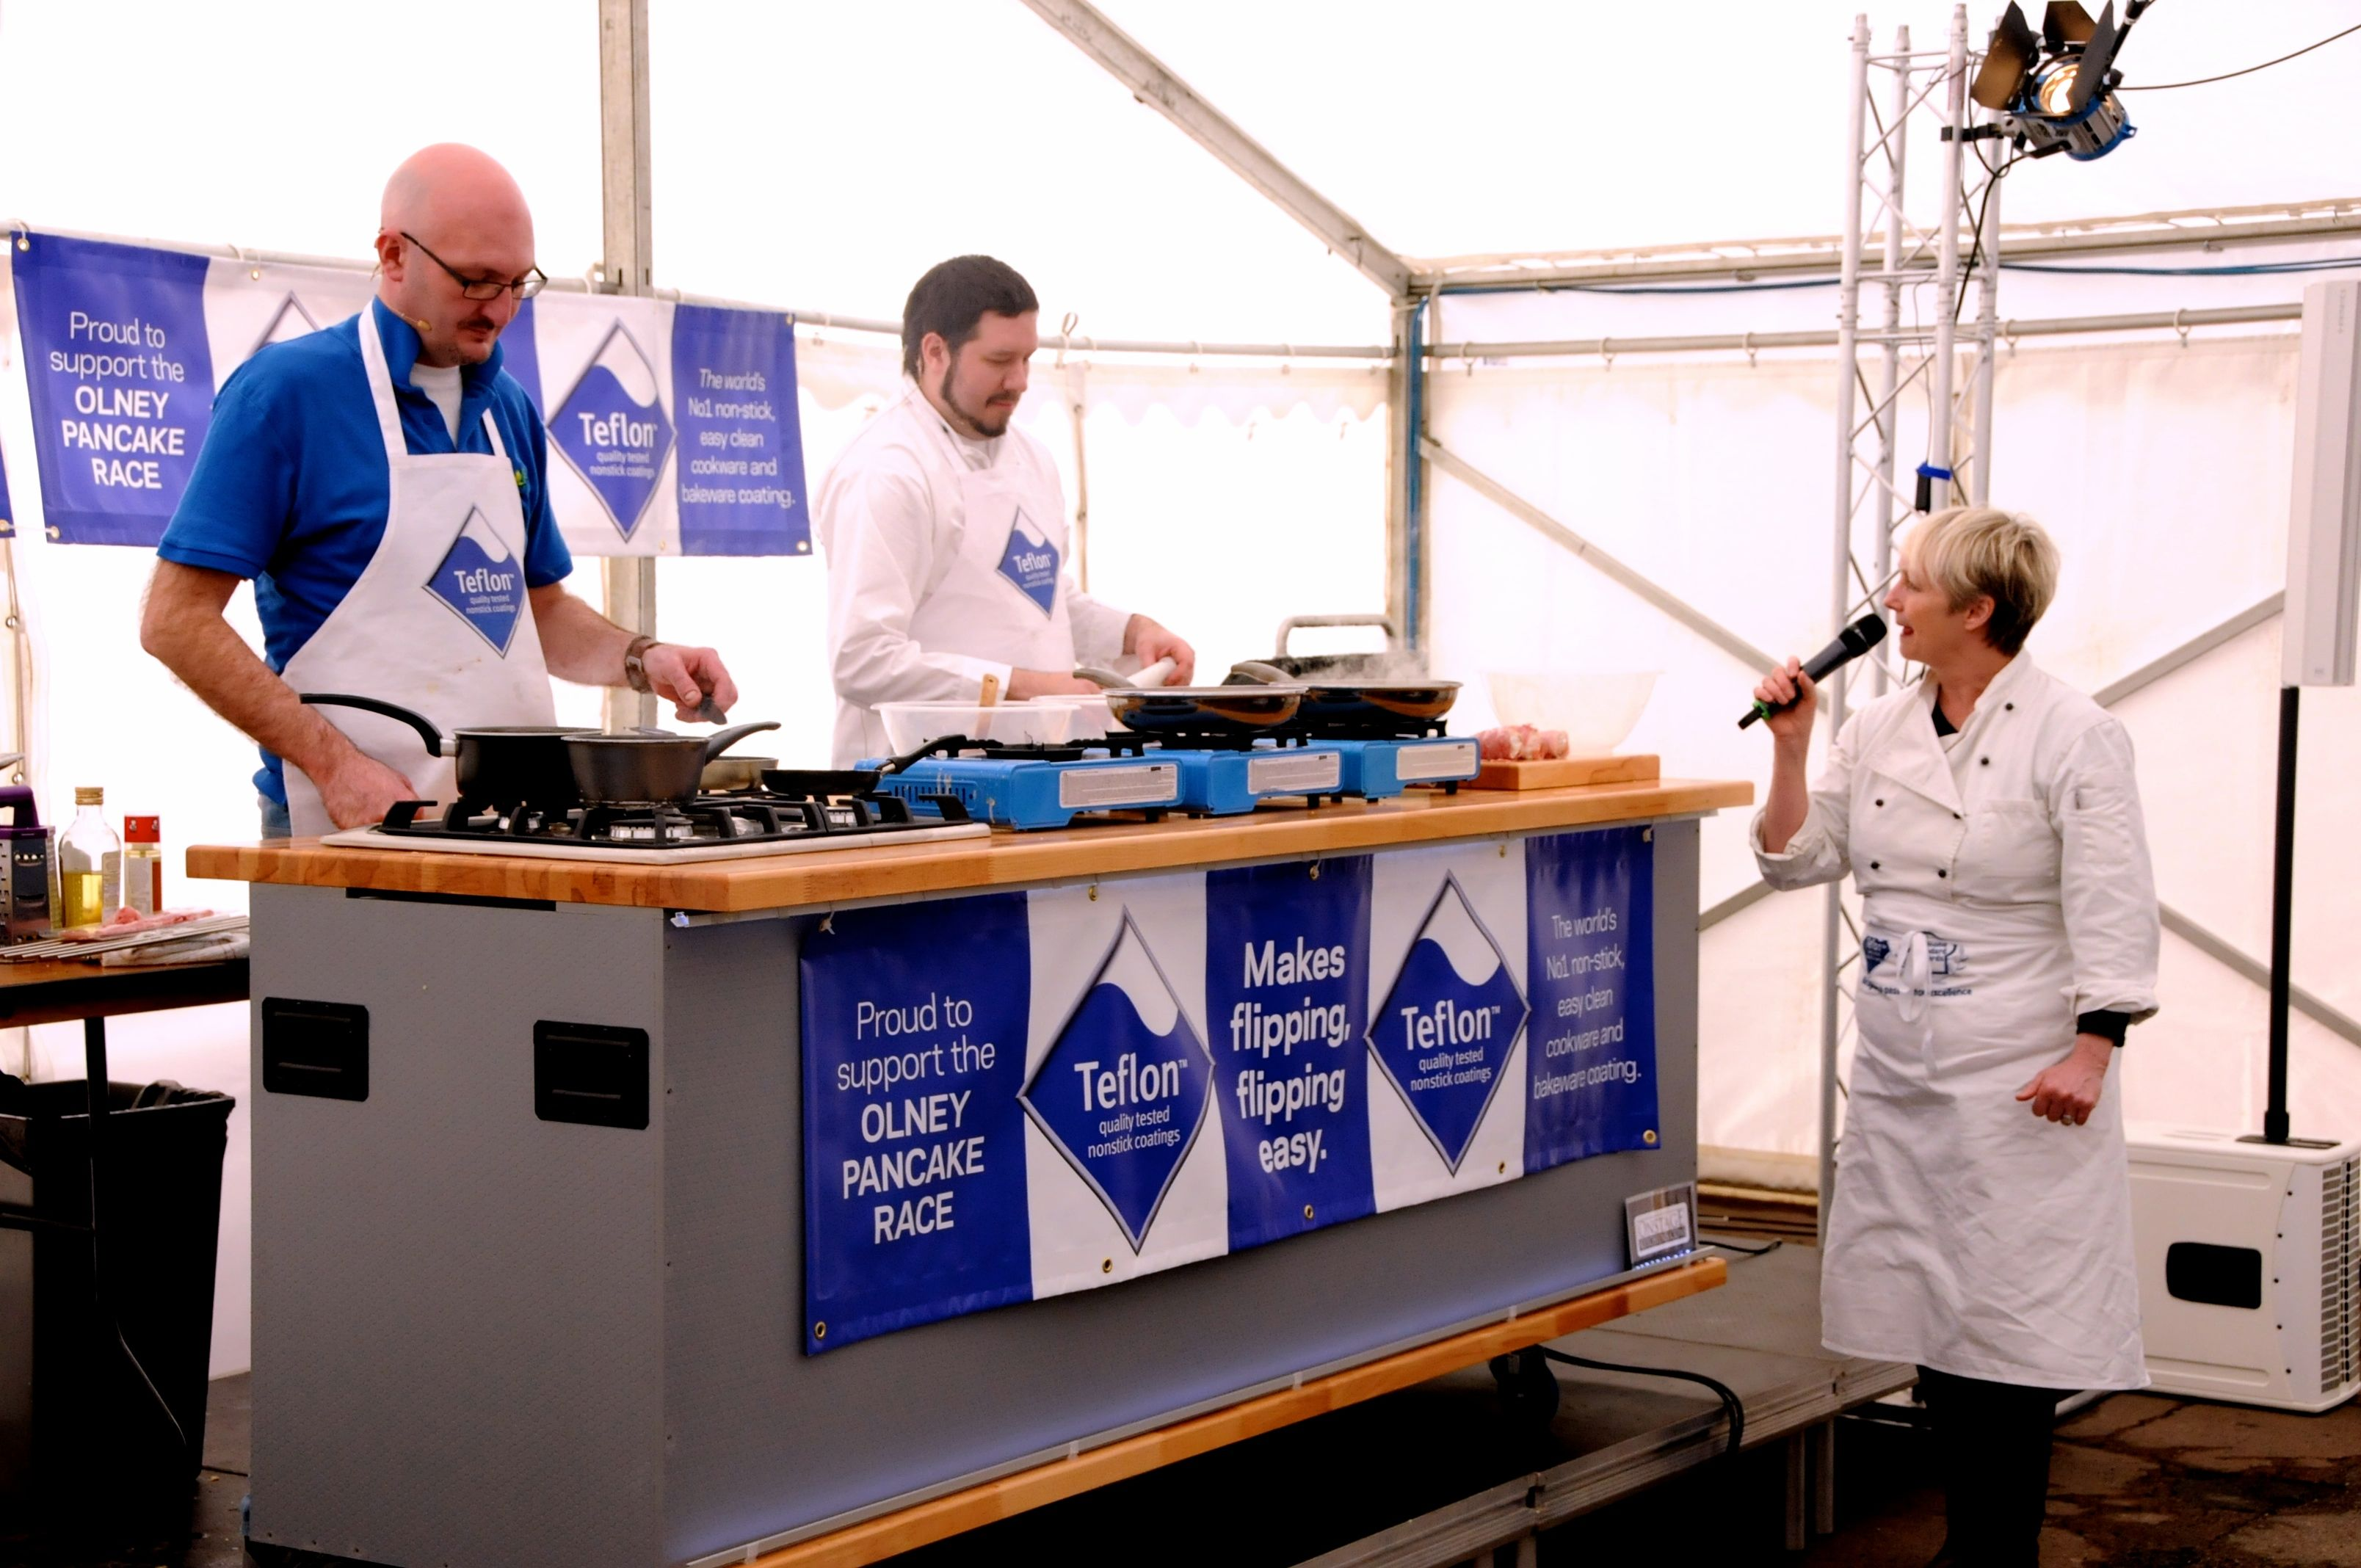 On Stage Kitchens - ready steady cookoff with Lesley Walters